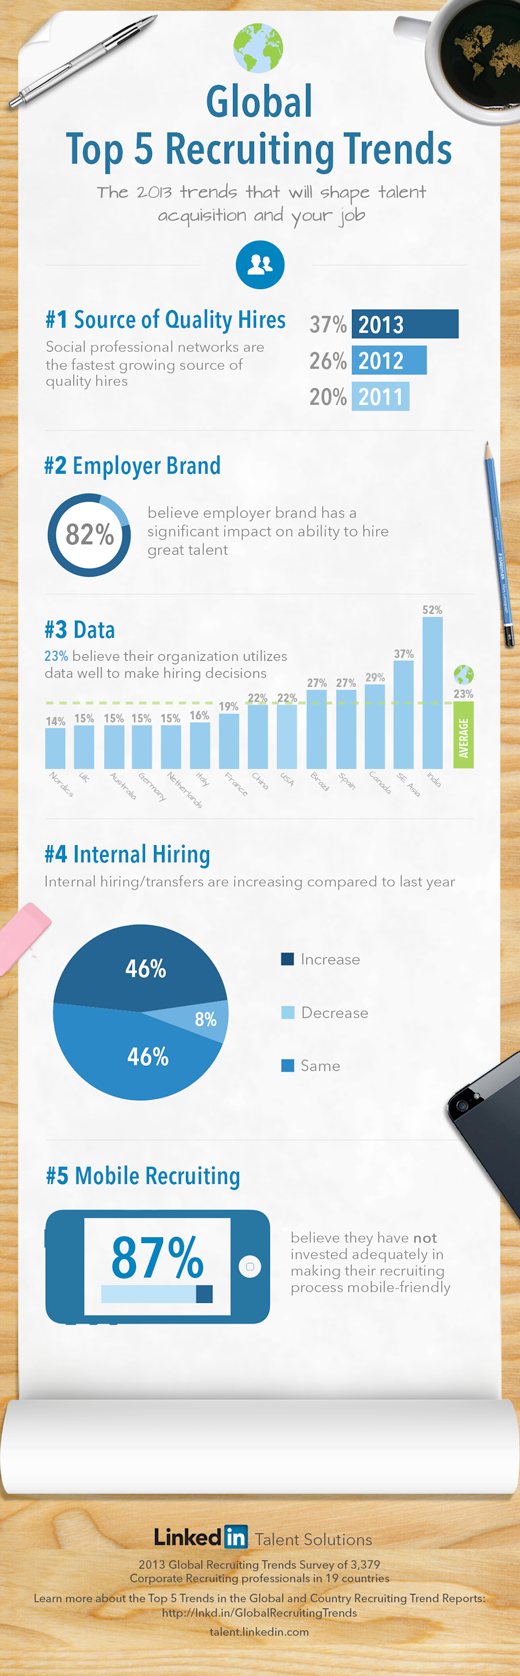 Top 5 Global Recruiting Trends